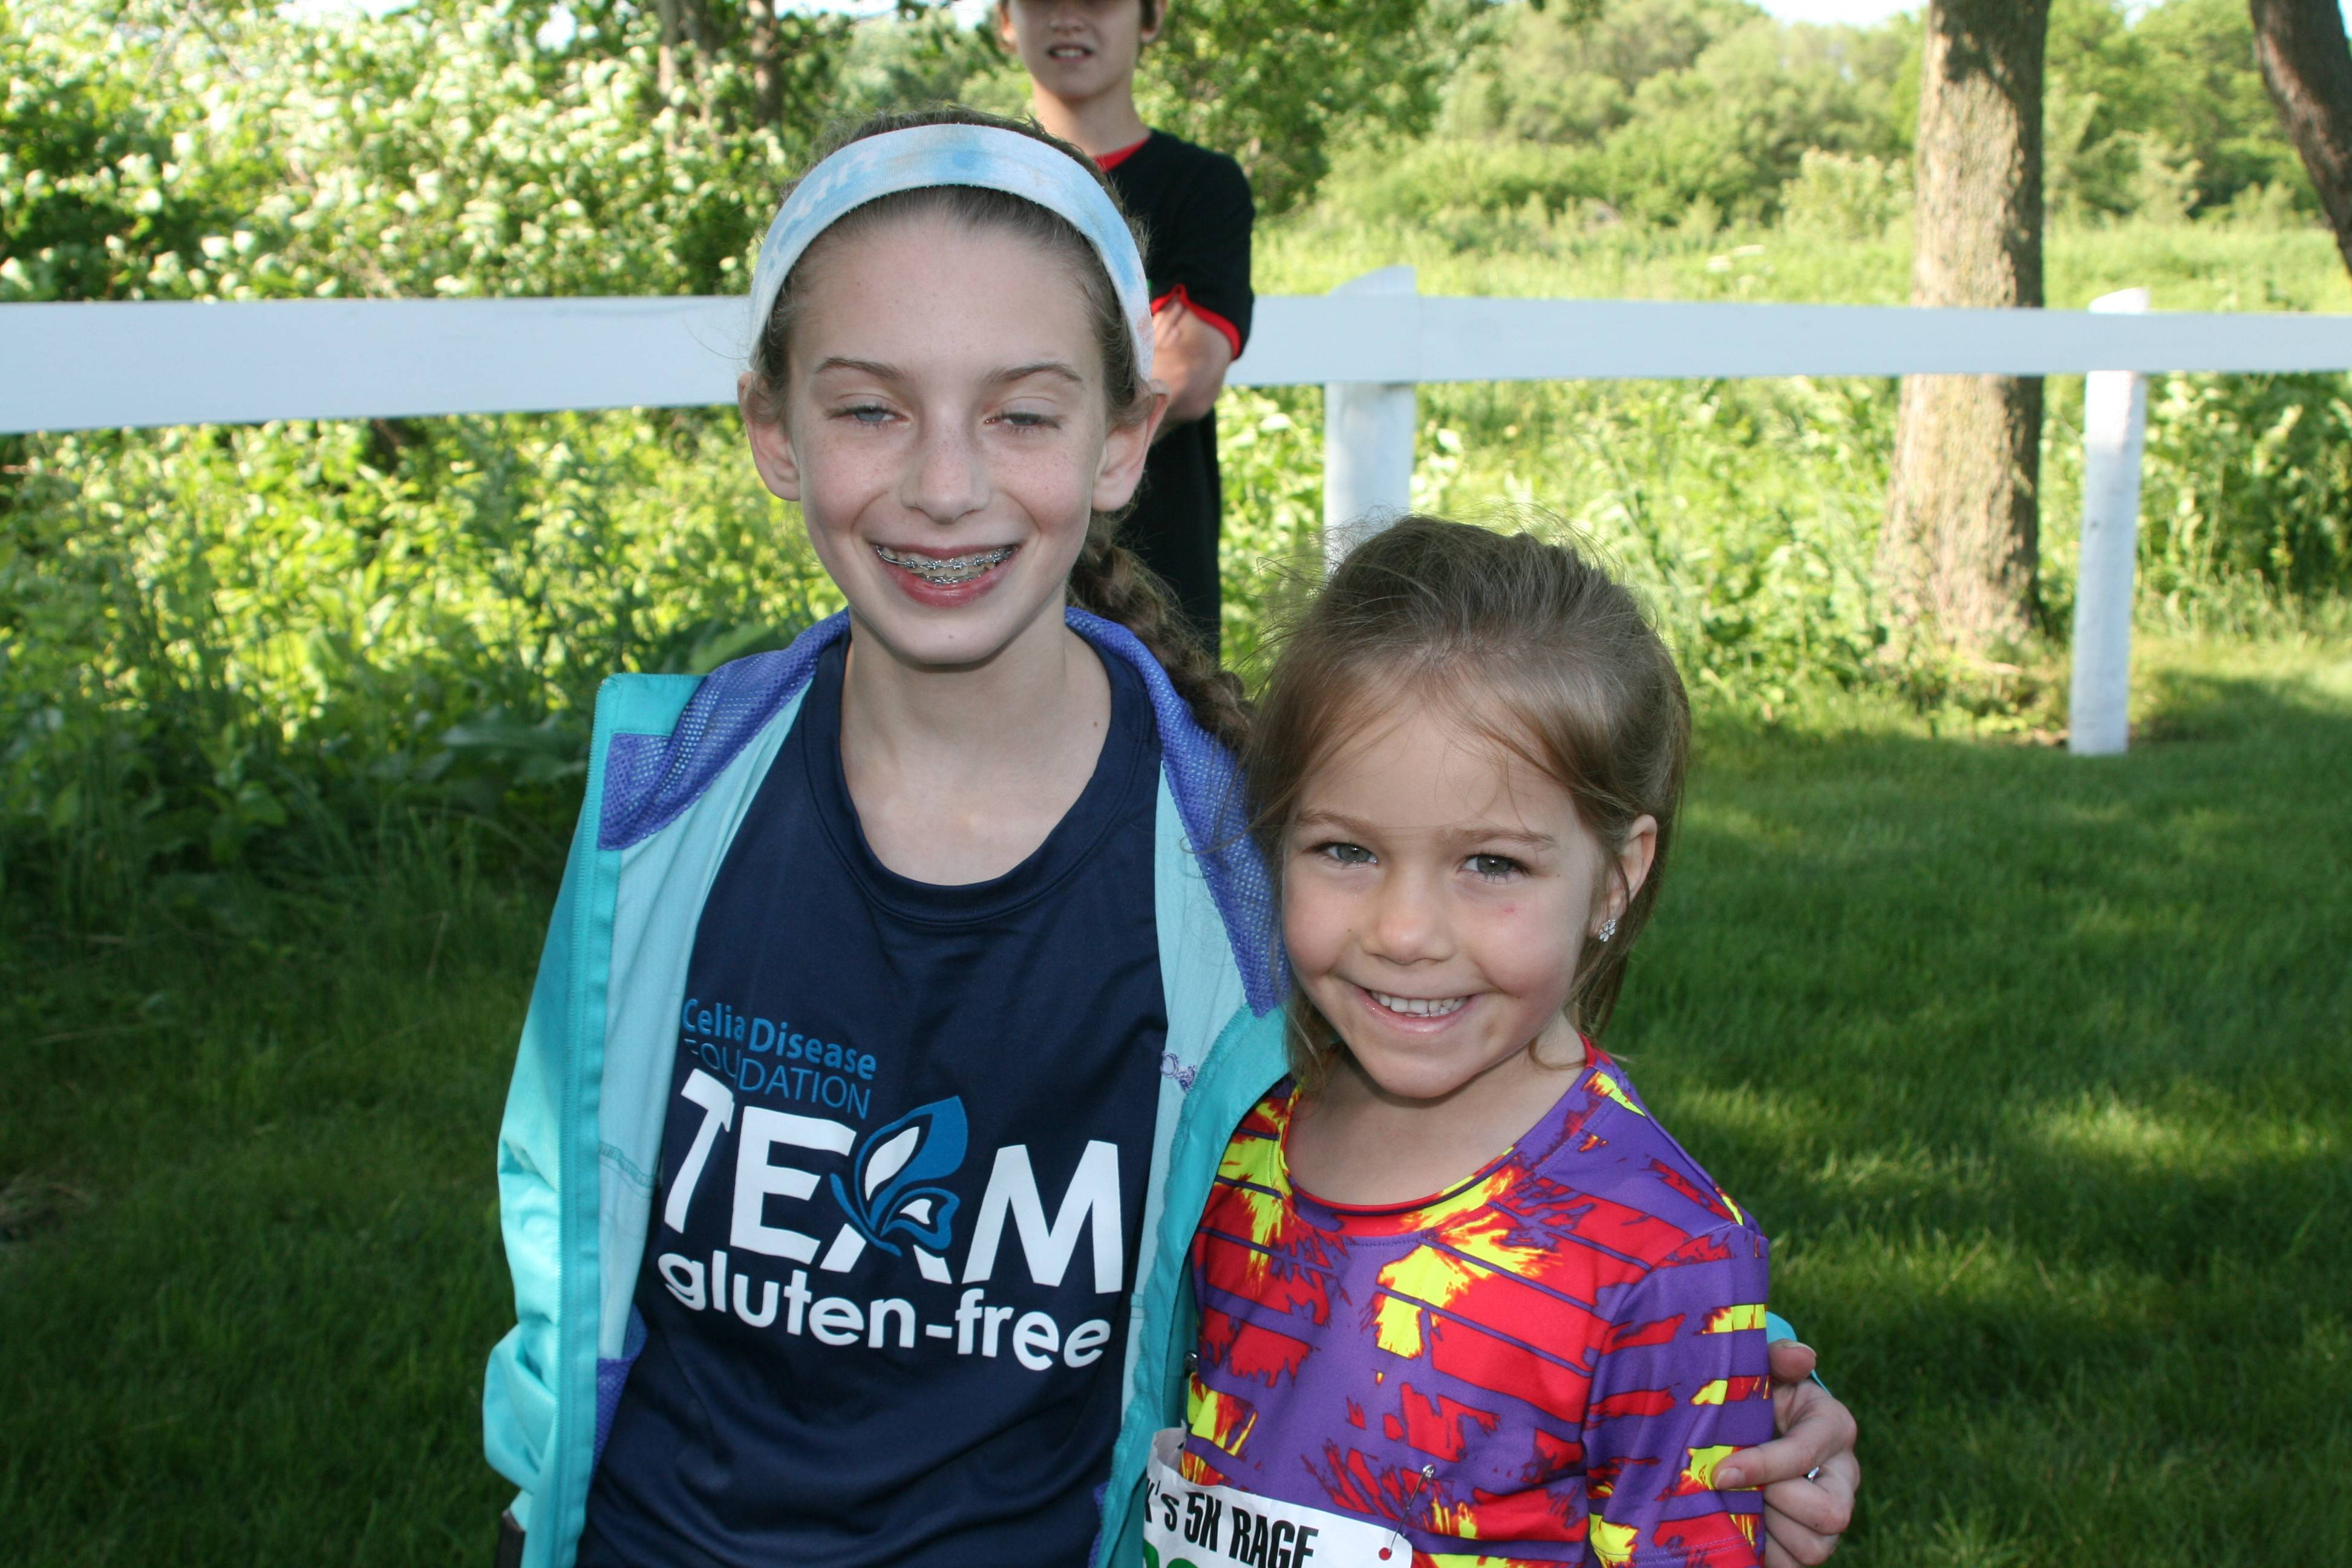 Naperville 12-year-old's race raises $9,000 for Celiac Foundation